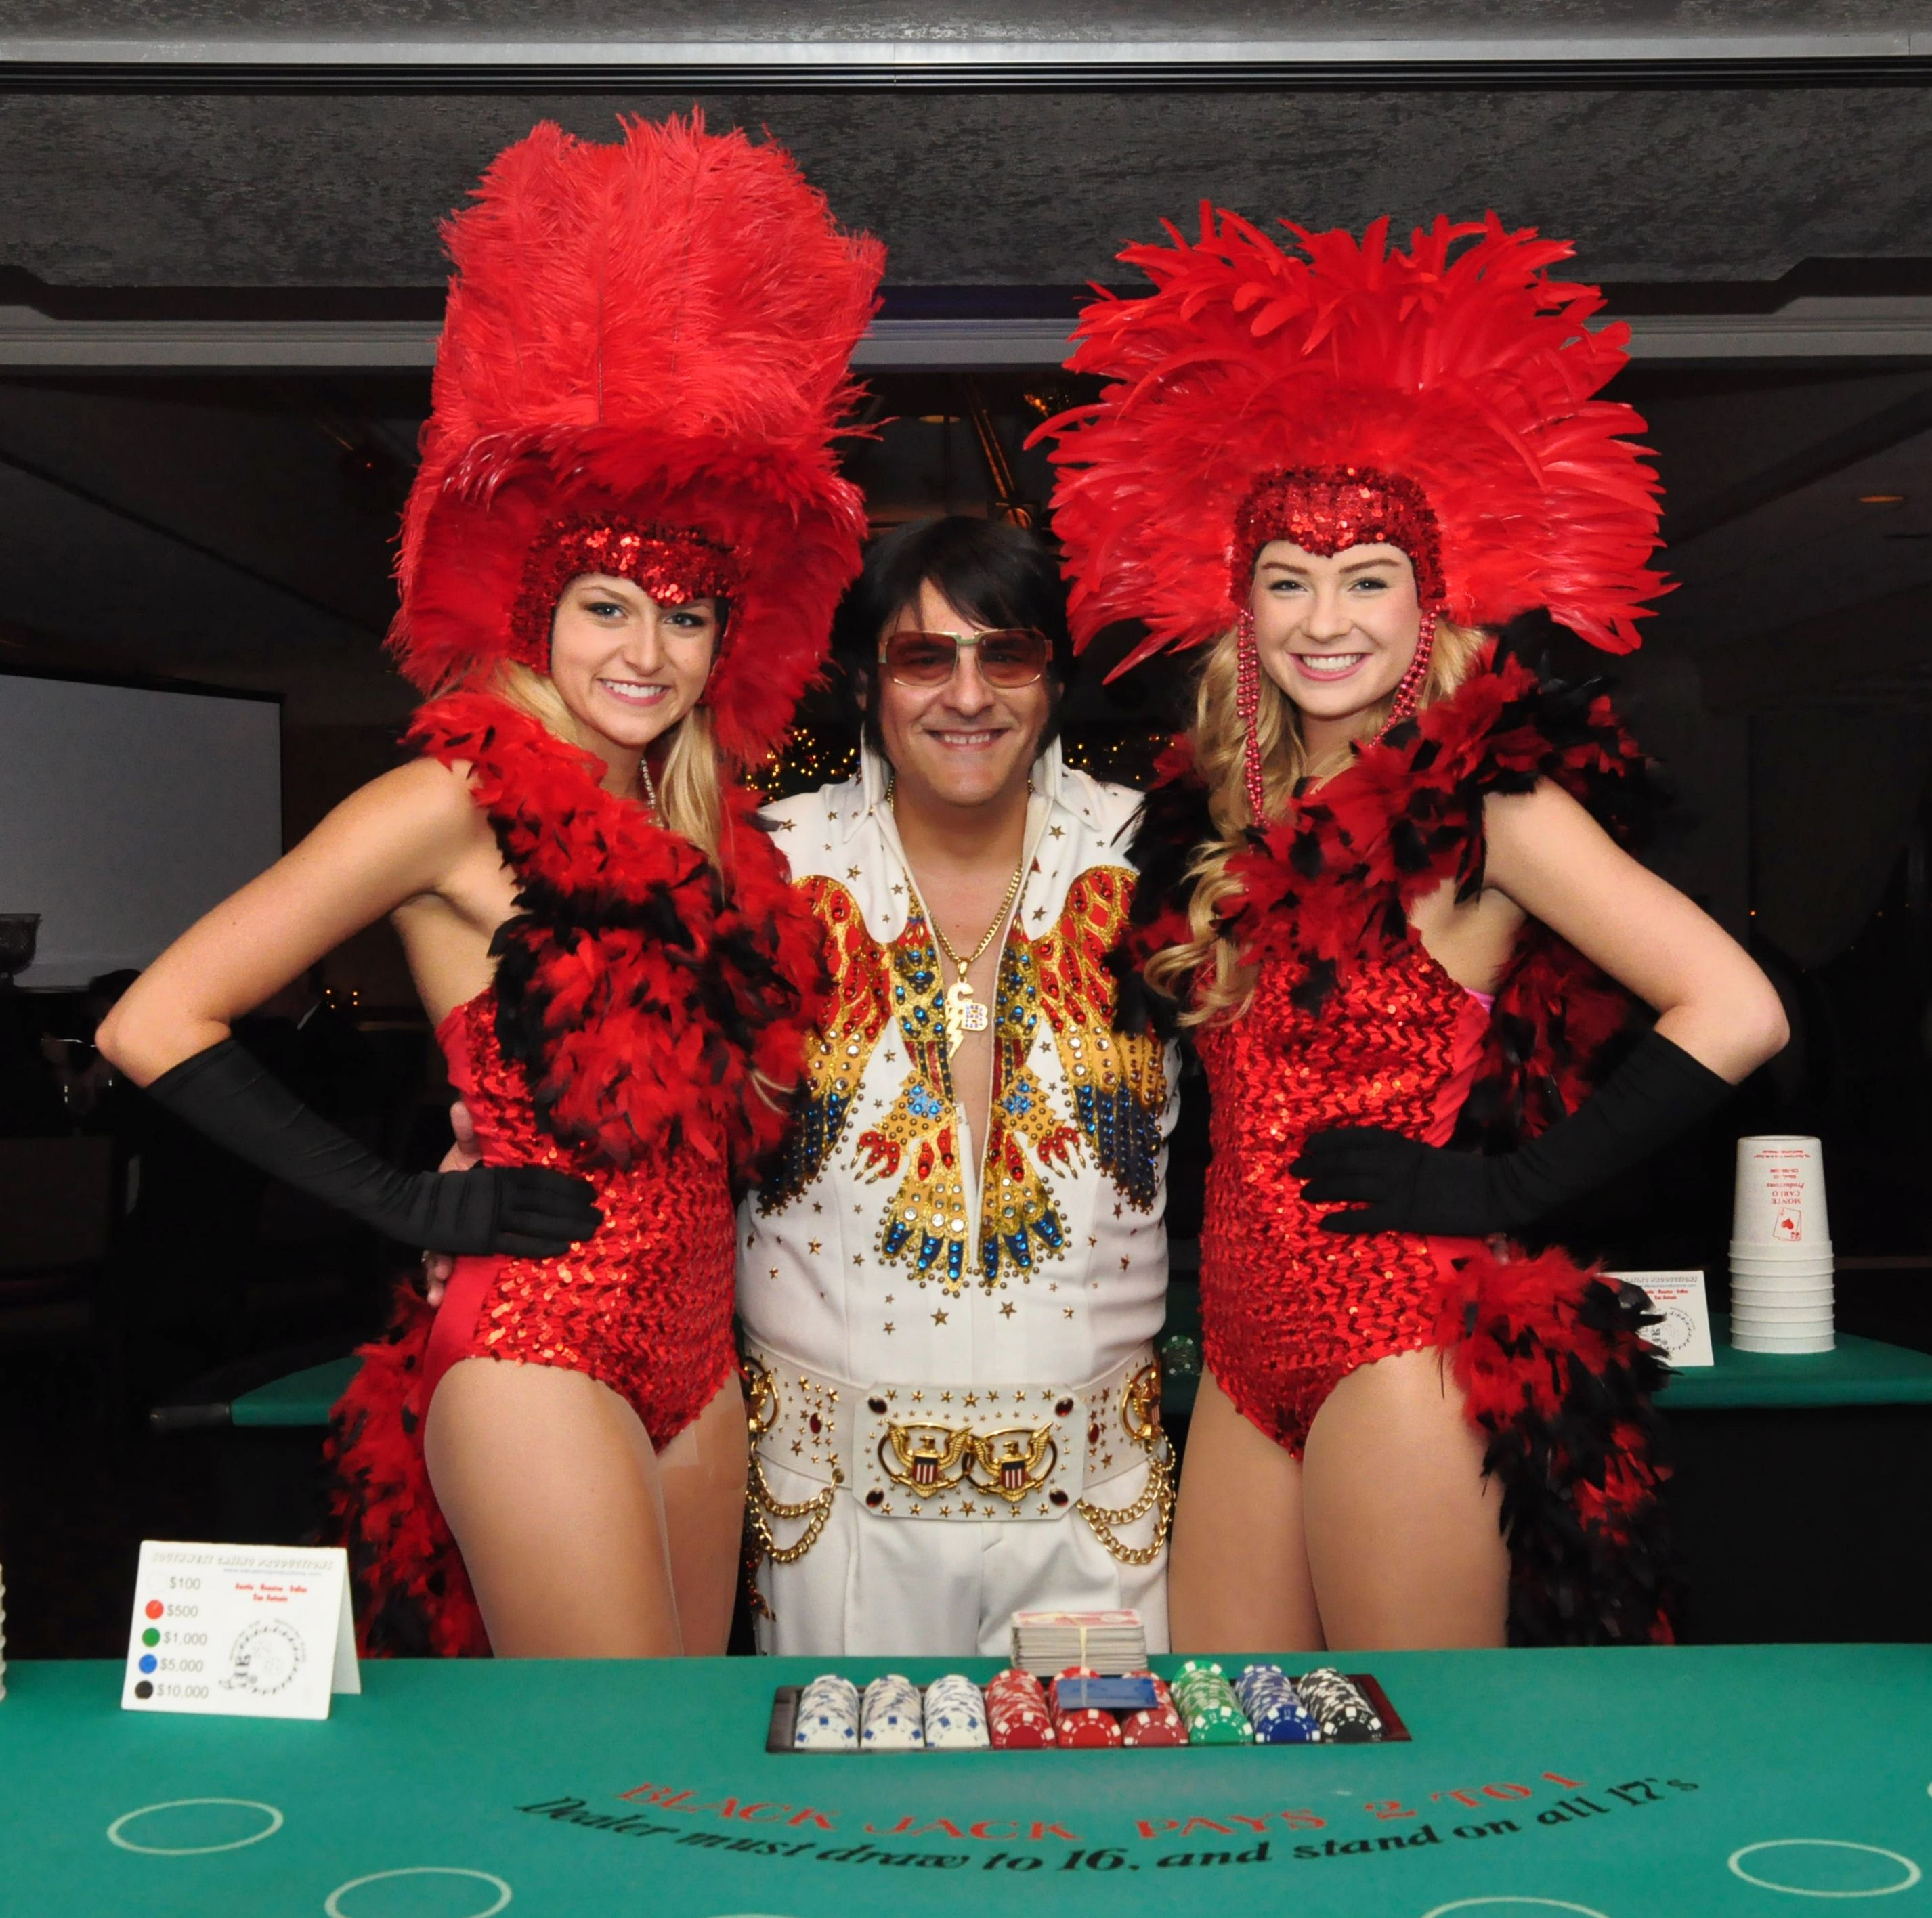 elvis_and_showgirls.jpg